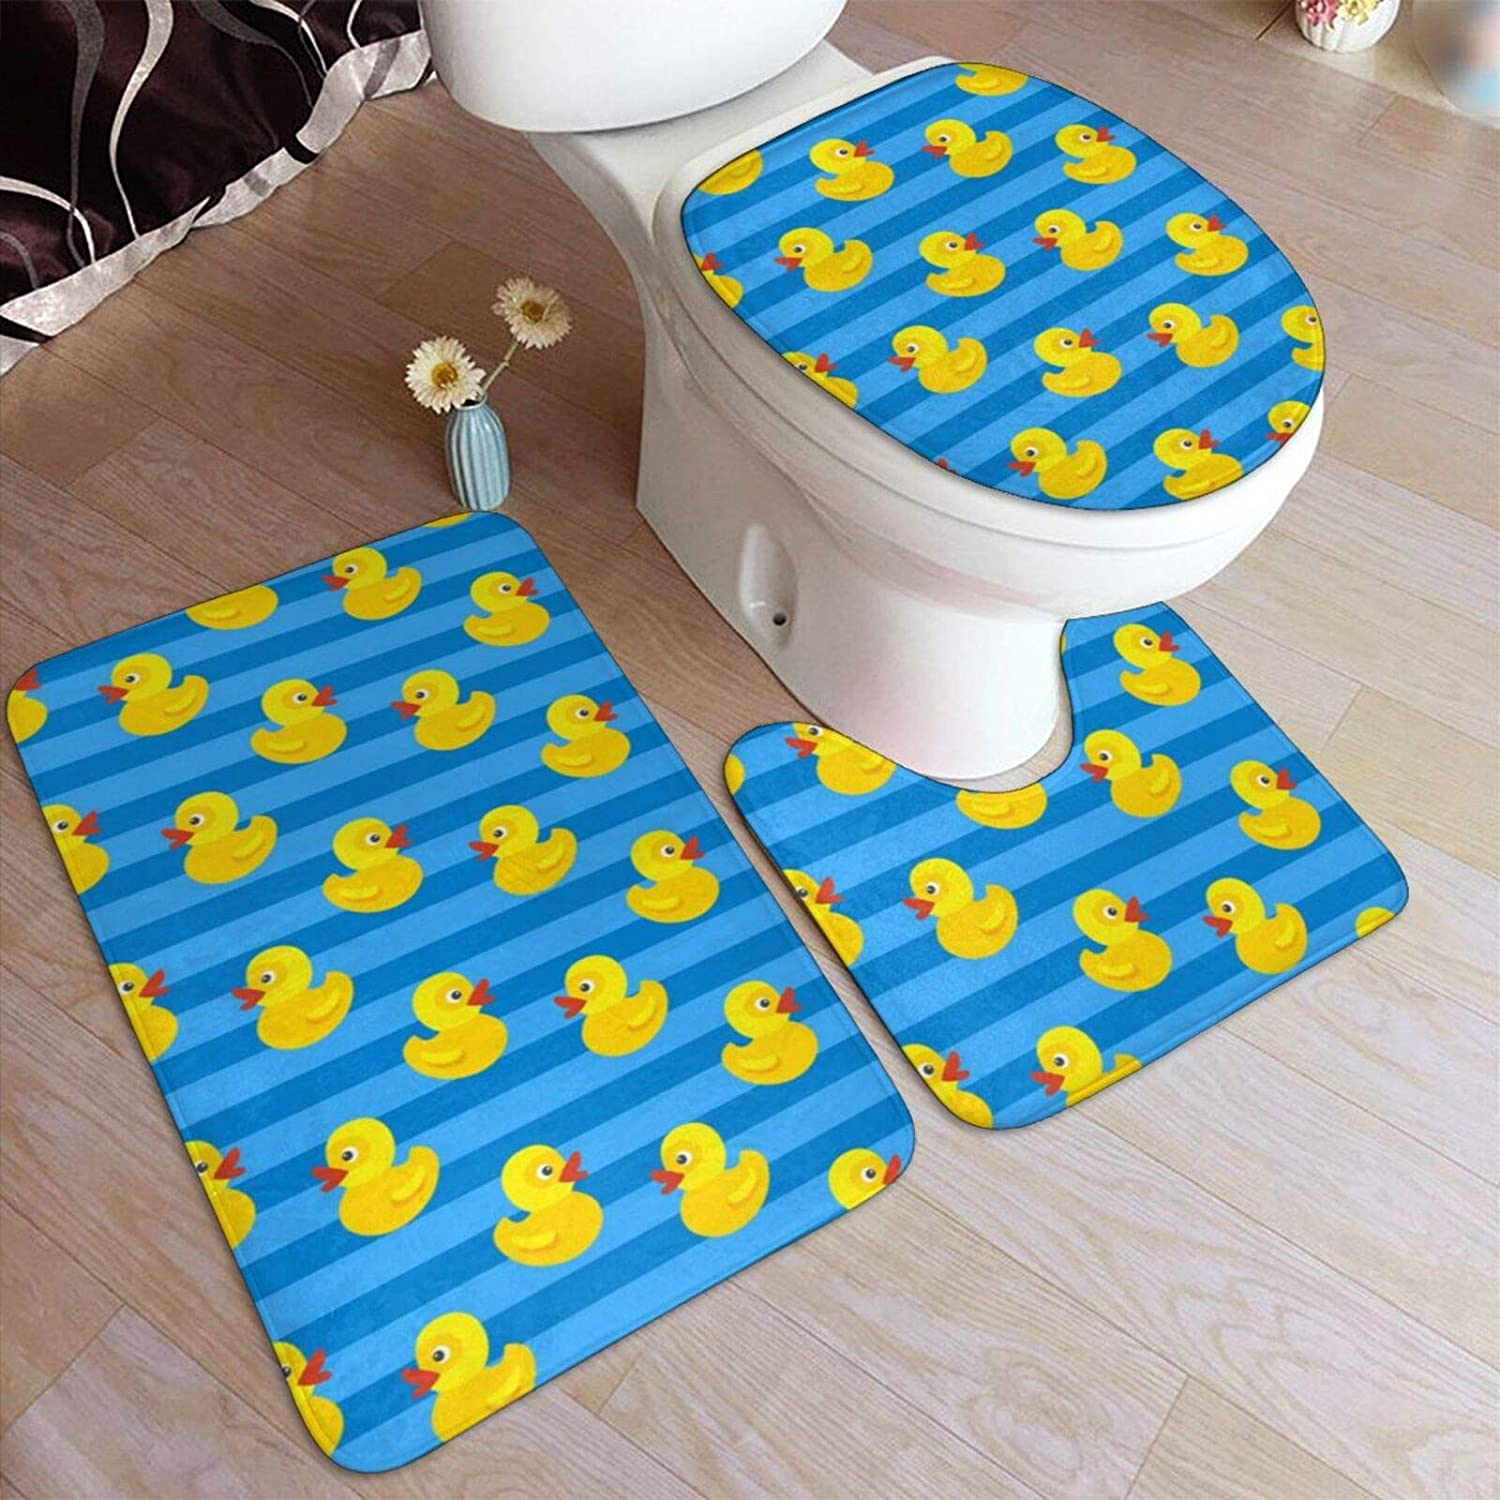 Amazon.com: Bathroom Rugs Sets 5 Piece Cute Yellow Rubber Duck On